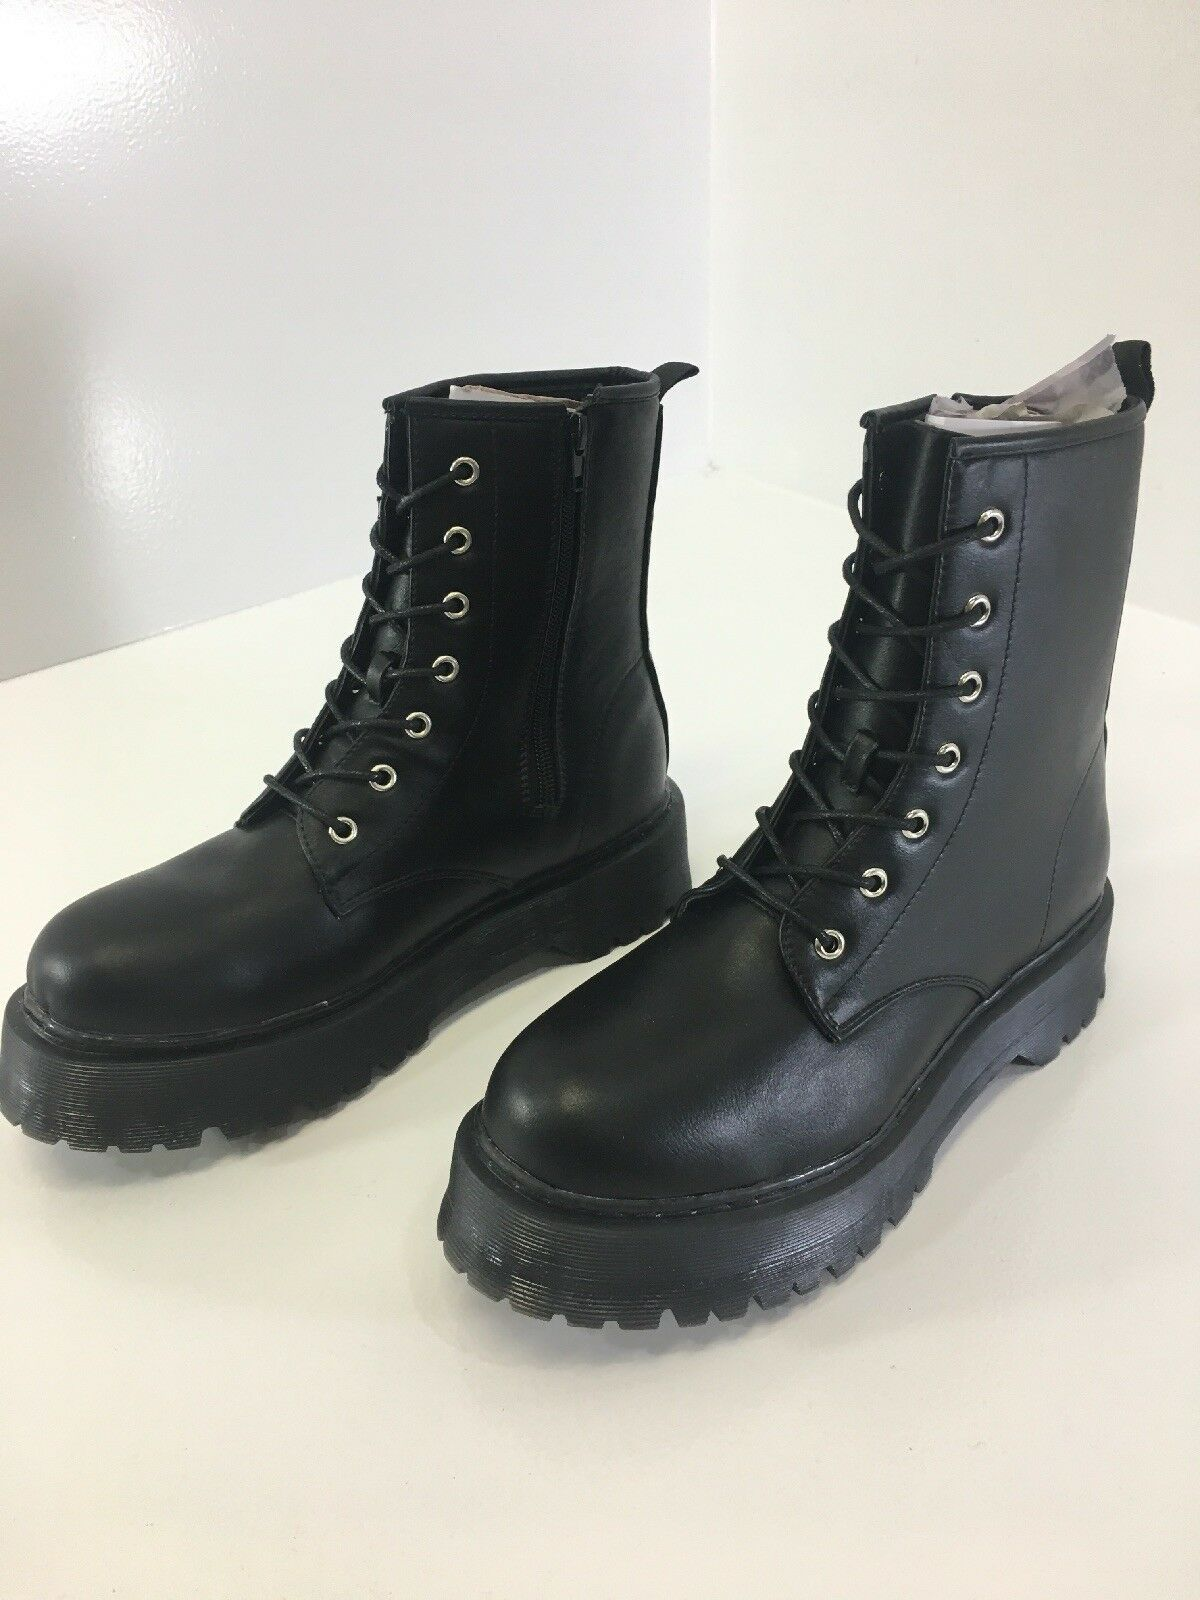 TRUFFLE COLLECTION WOMENS CHUNKY SIDE ZIP LACE UP COMBAT BOOTS BLACK US 8 NEW